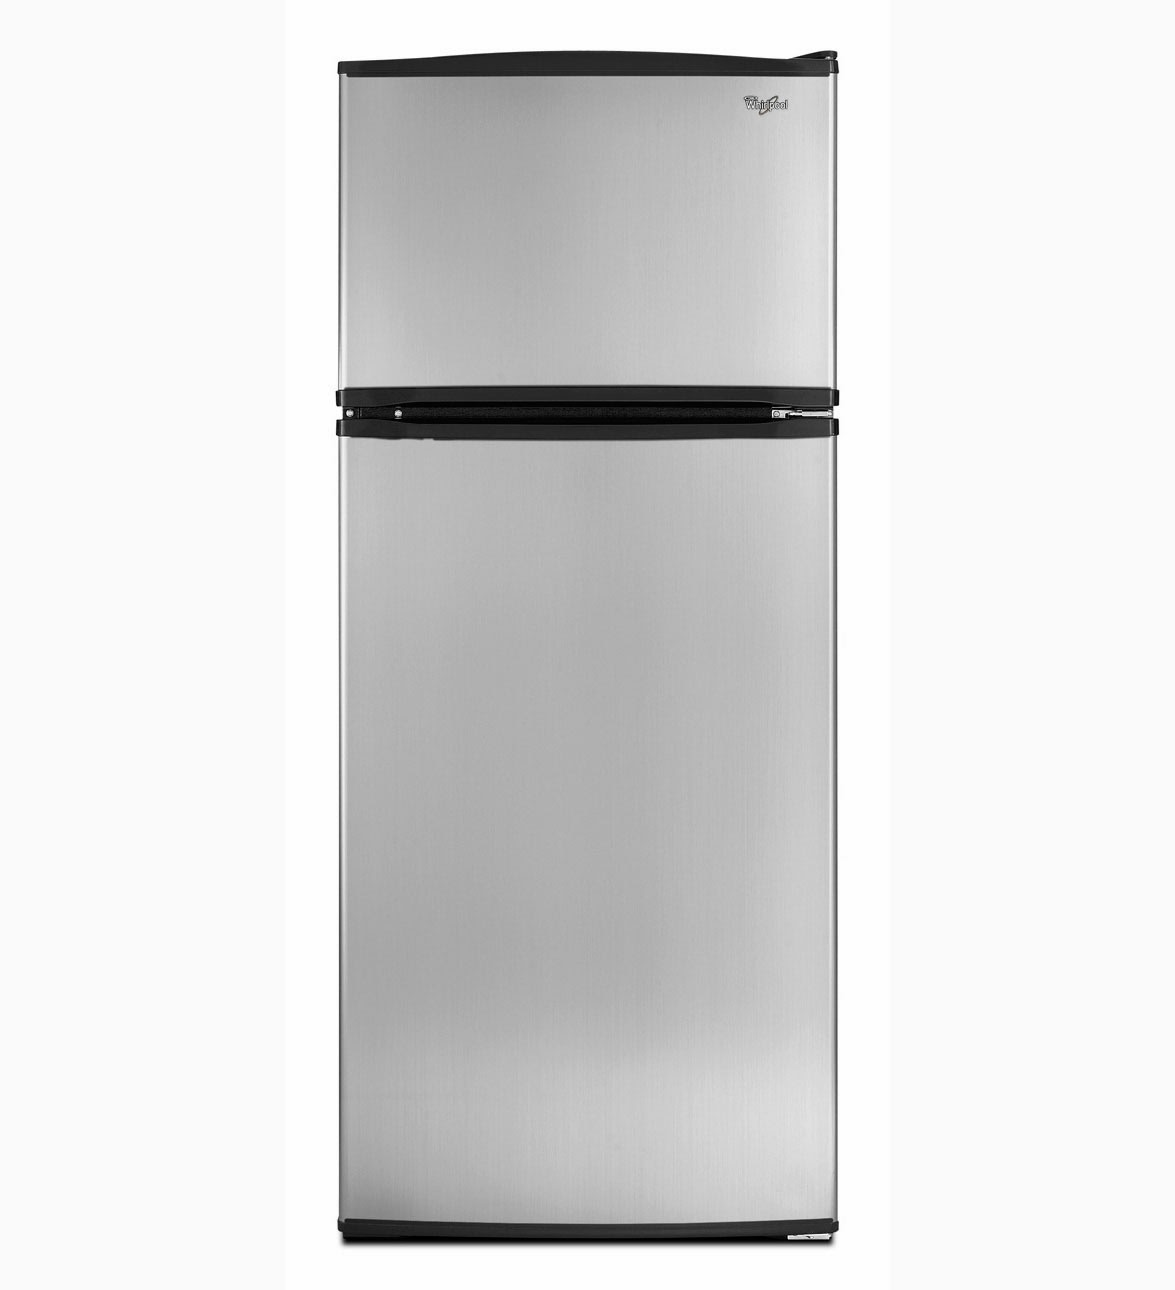 whirlpool refrigerator brand stainless steel top freezer. Black Bedroom Furniture Sets. Home Design Ideas